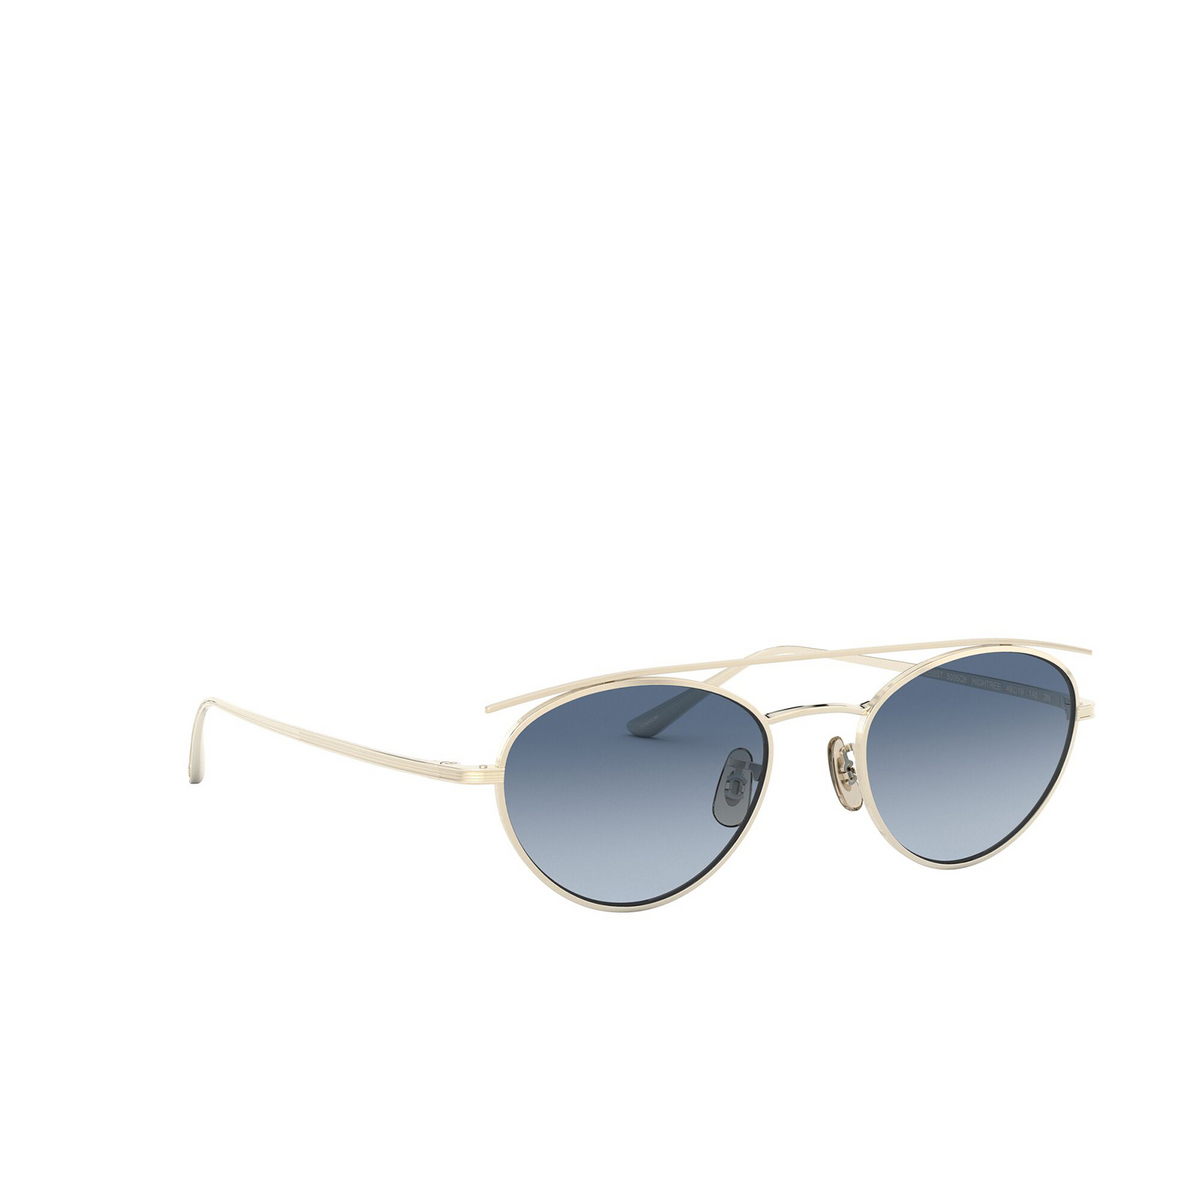 Oliver Peoples® Oval Sunglasses: Hightree OV1258ST color Gold 5035Q8 - three-quarters view.